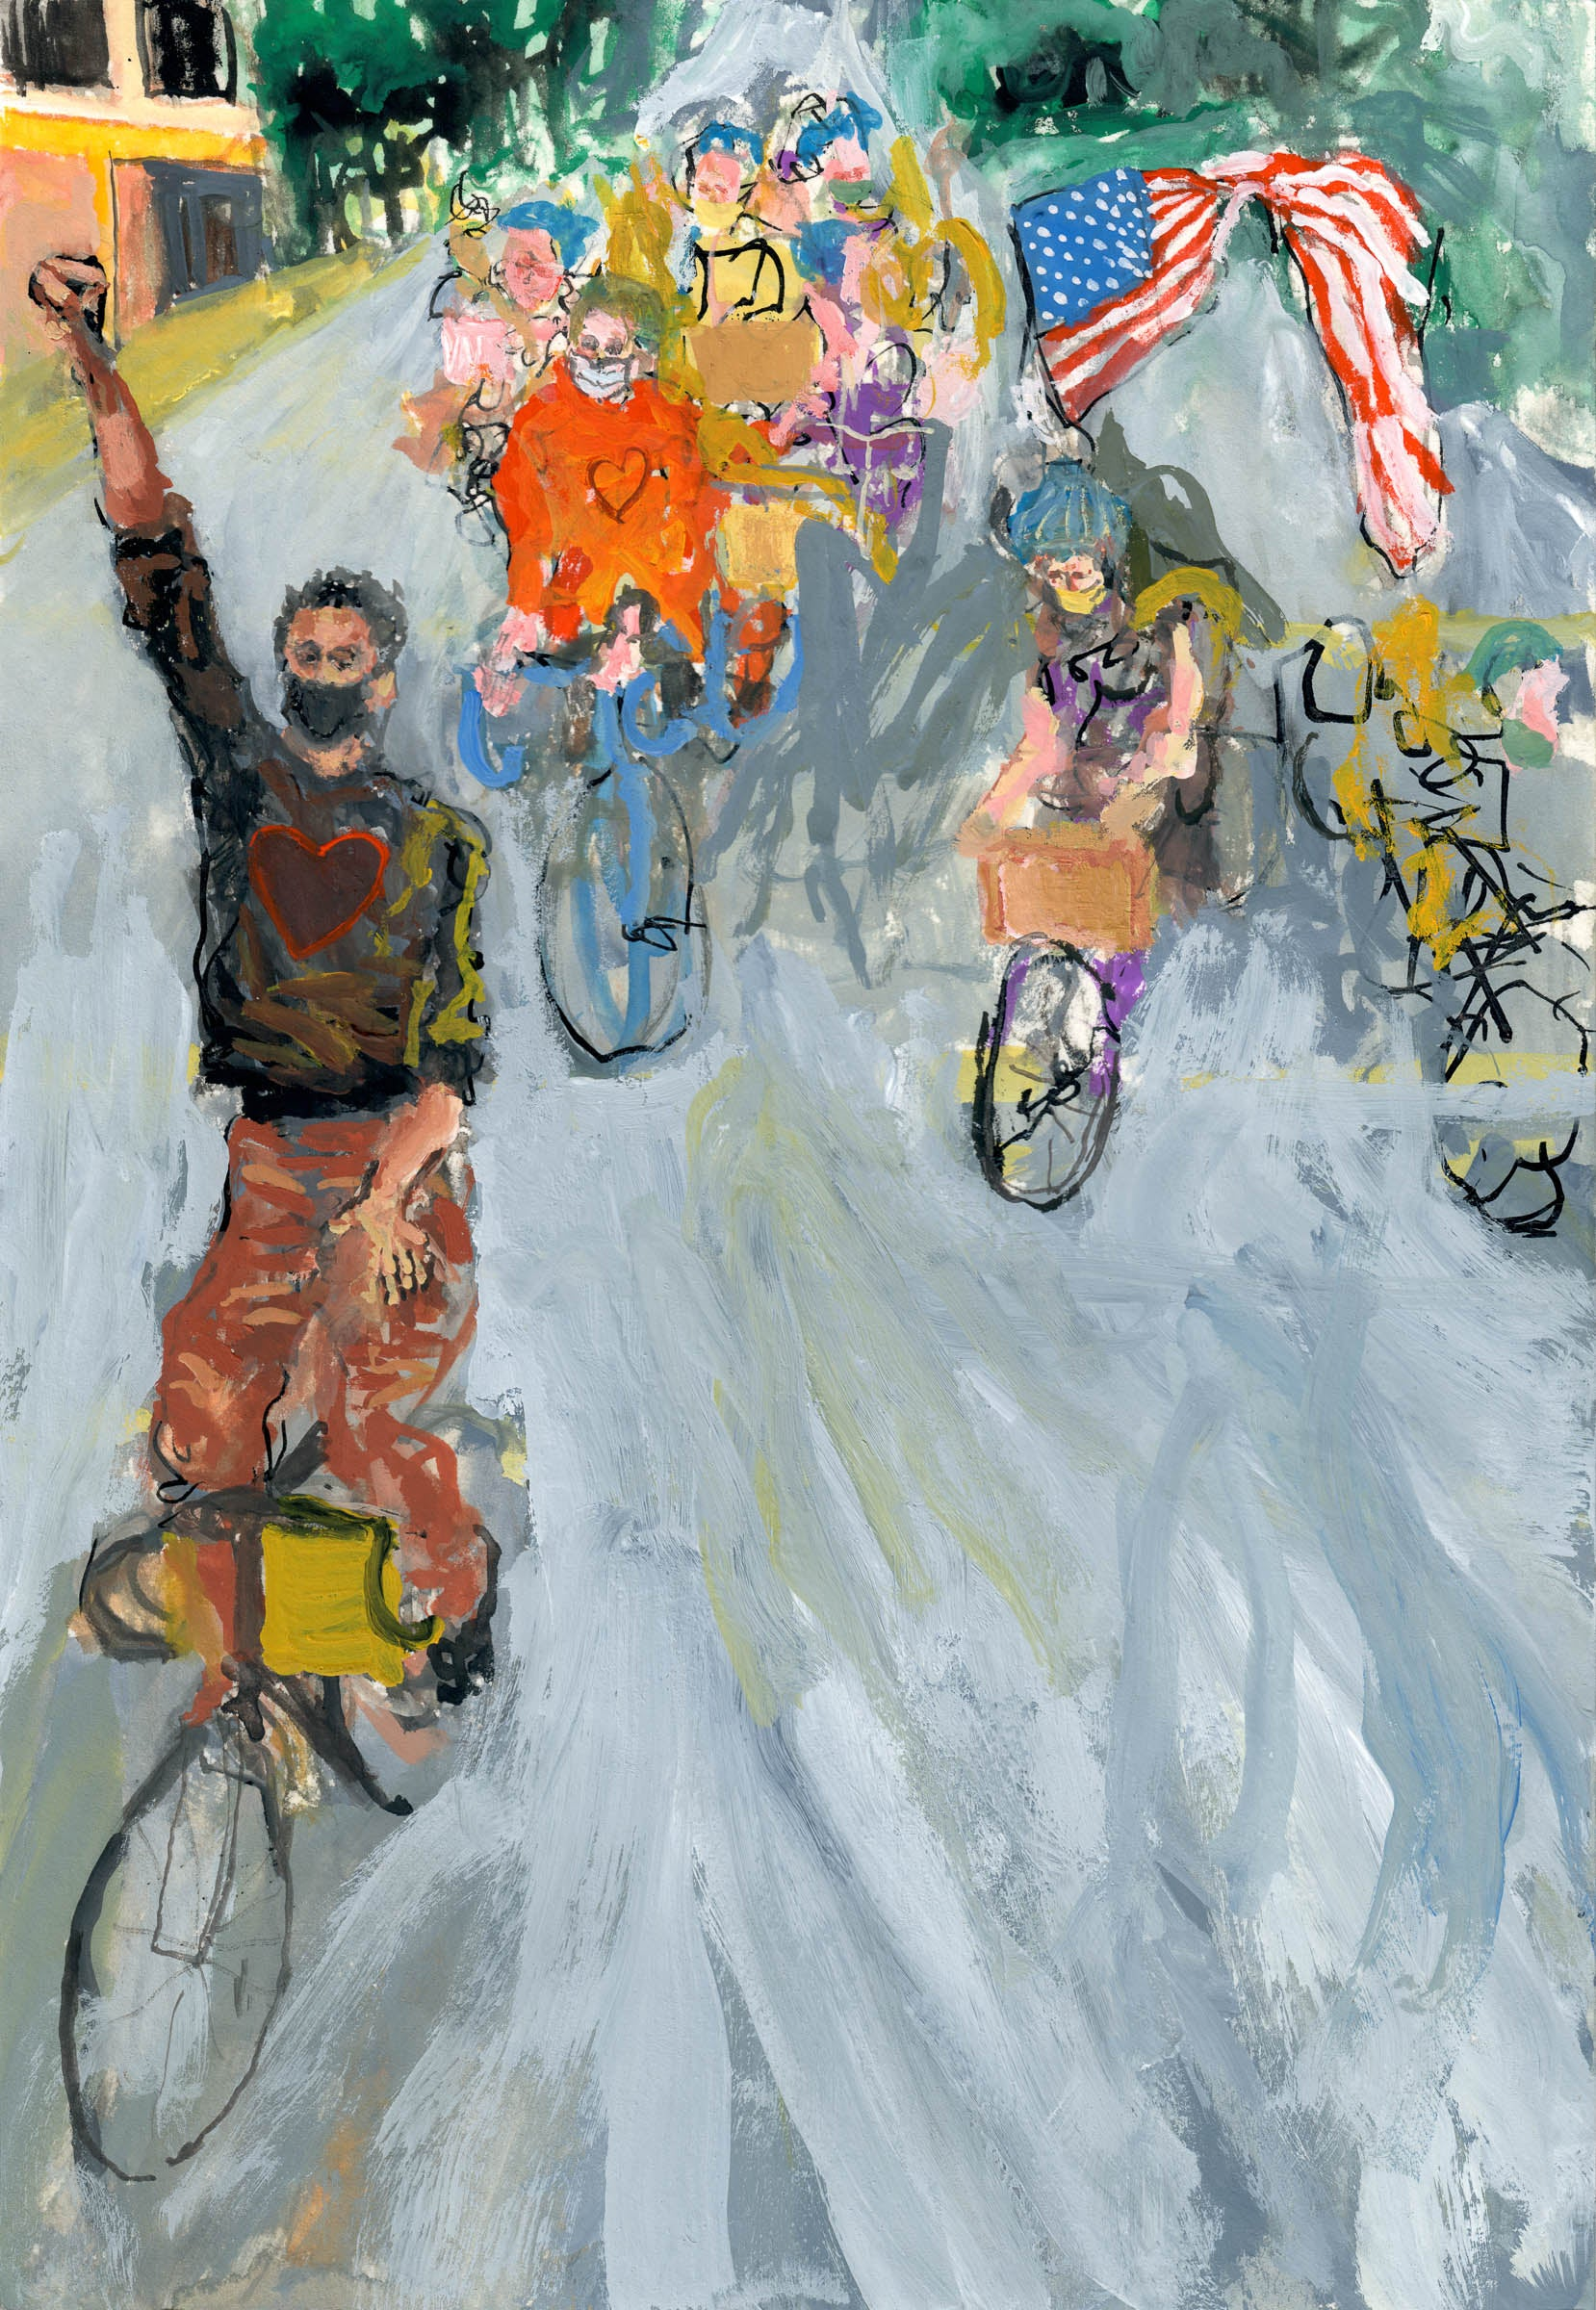 Monumental Bike Protest Painting Study 2 - No Hands - Original